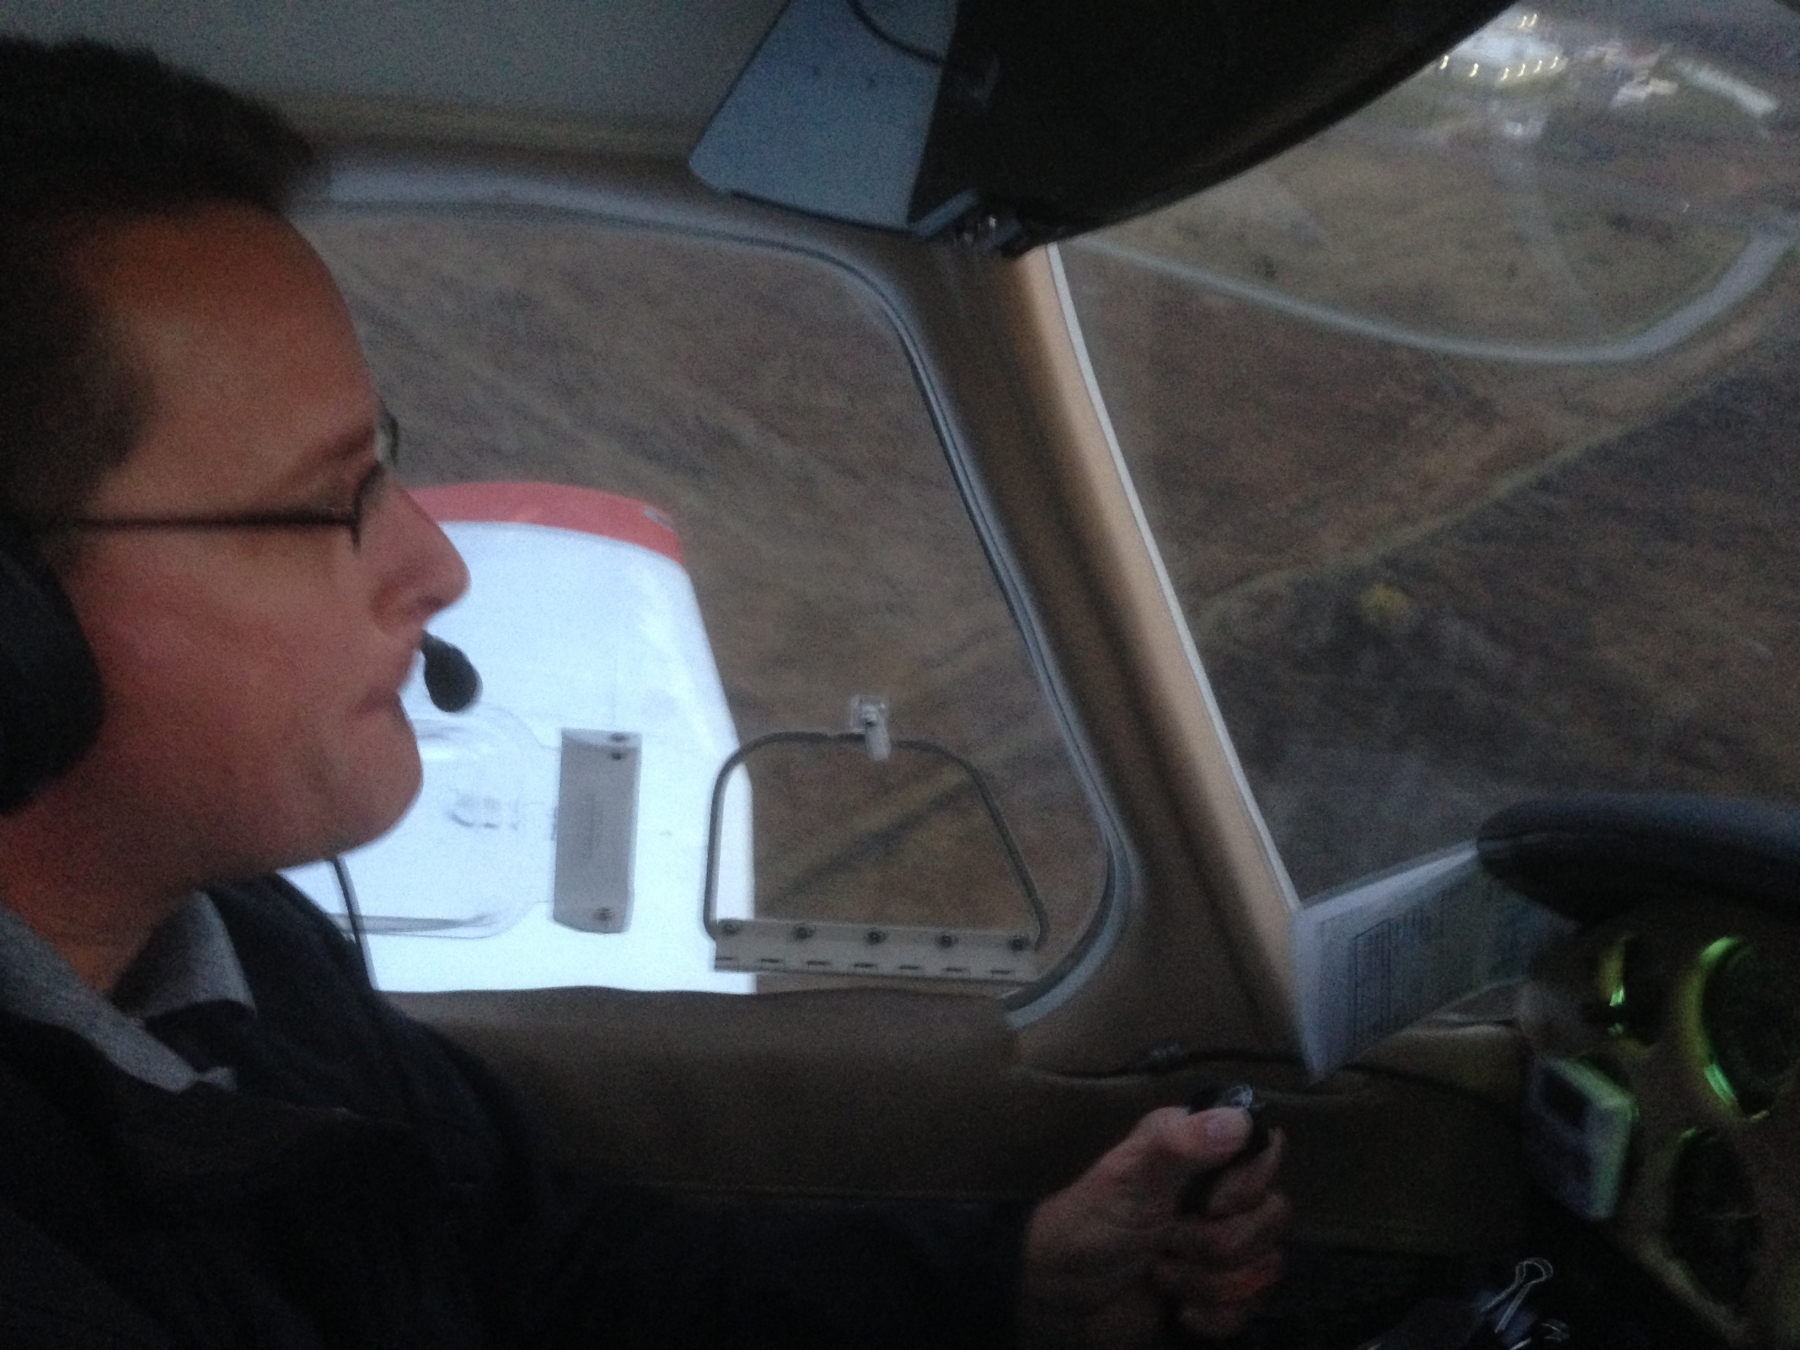 Dave Heinrich masterfully pilots his aircraft back to Buffalo-Lancaster, NY after his flight test